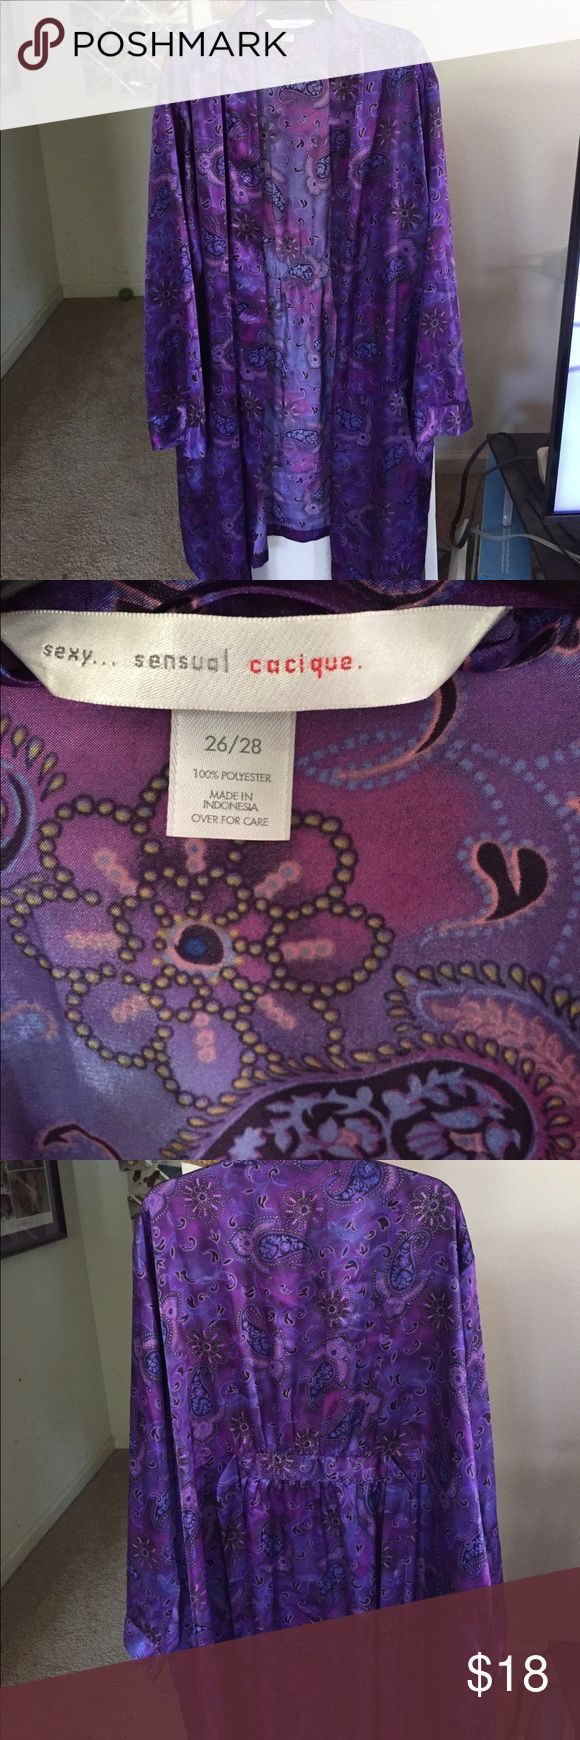 Lane Bryant robe Lane Bryant purple paisley robe. Size 26/28. Long sleeves. 2 pockets. Tie in the inside if robe as well as outside. Excellent condition. It is about knee length on me and I am 5 feet 10 inches tall. Lane Bryant Intimates & Sleepwear Robes